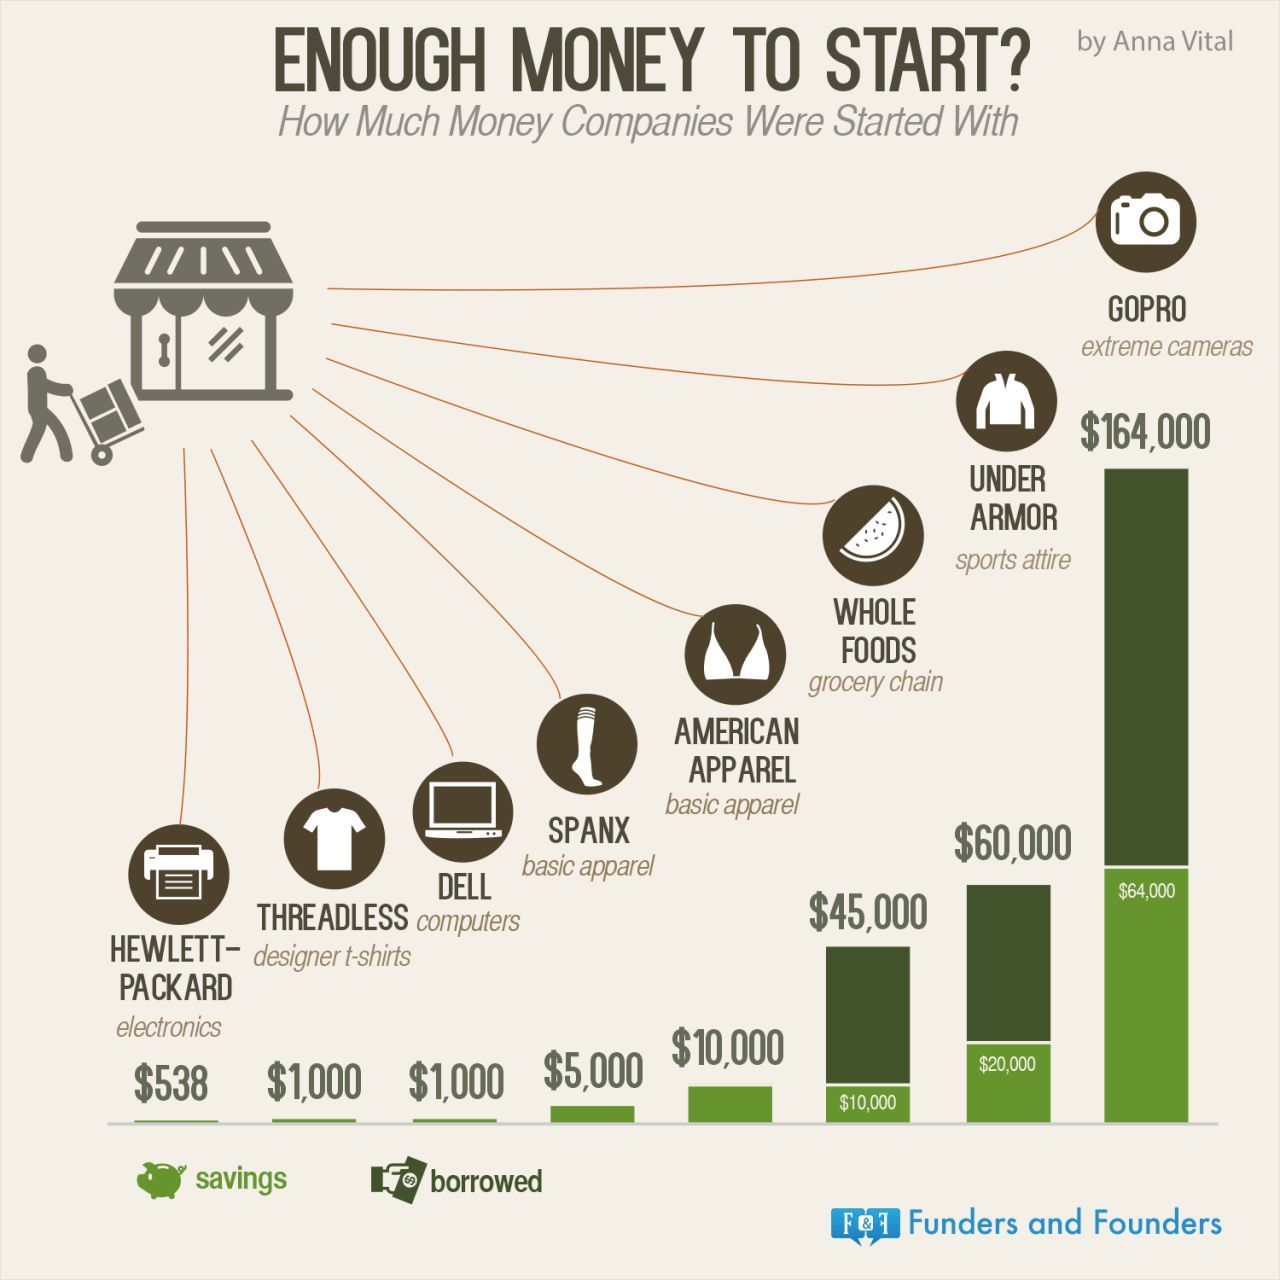 Image by Smart Marketing Tech on Business Venture